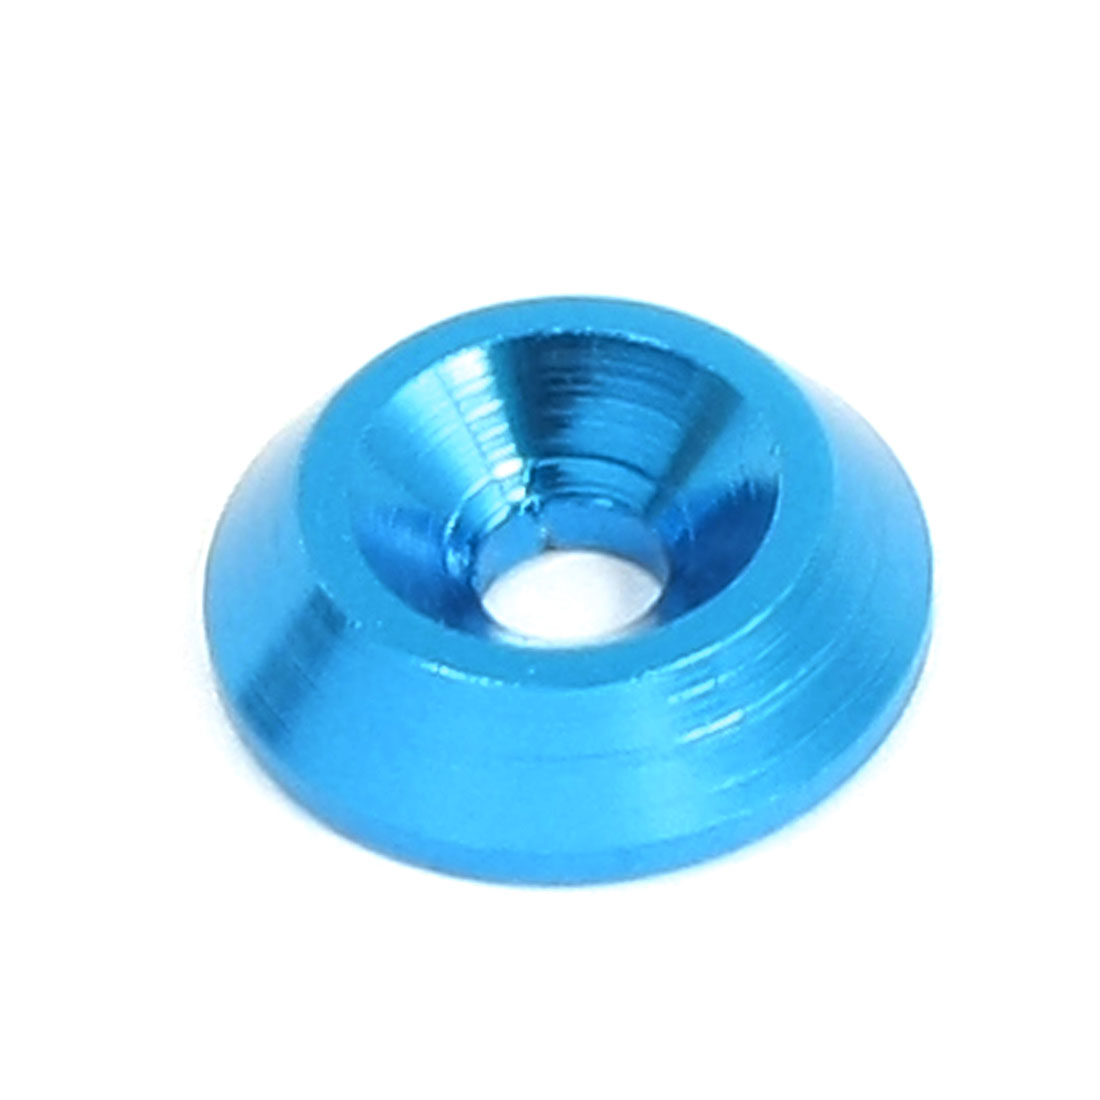 RC Model Blue Aluminium Alloy Wheel Spacer Washer Adaptor 3mm x 12mm x 3mm Replacement